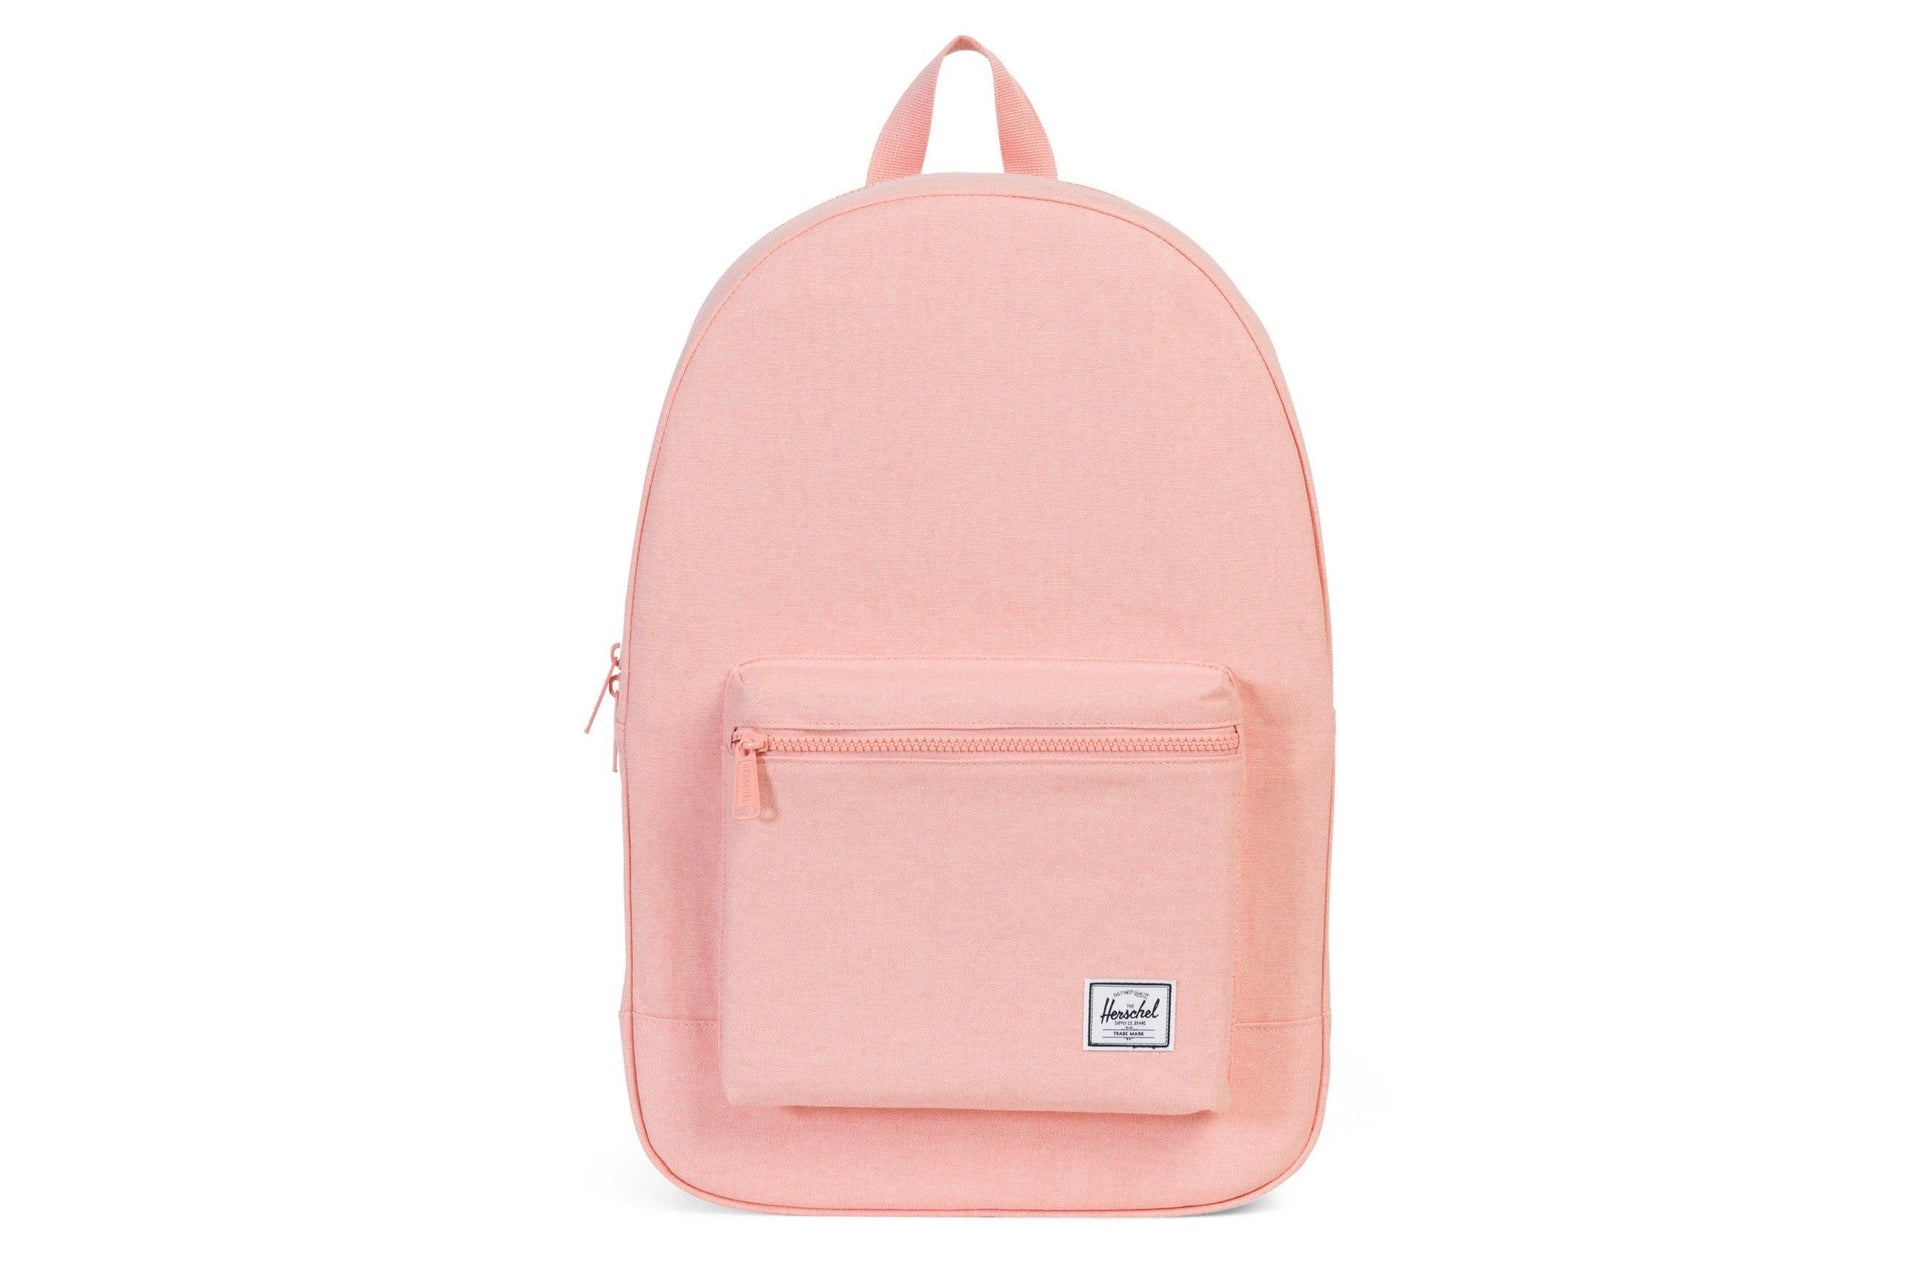 PA DAYPACK 10 OZ. CANVAS BAGS HERSCHEL APRICOT BLUSH ONE SIZE